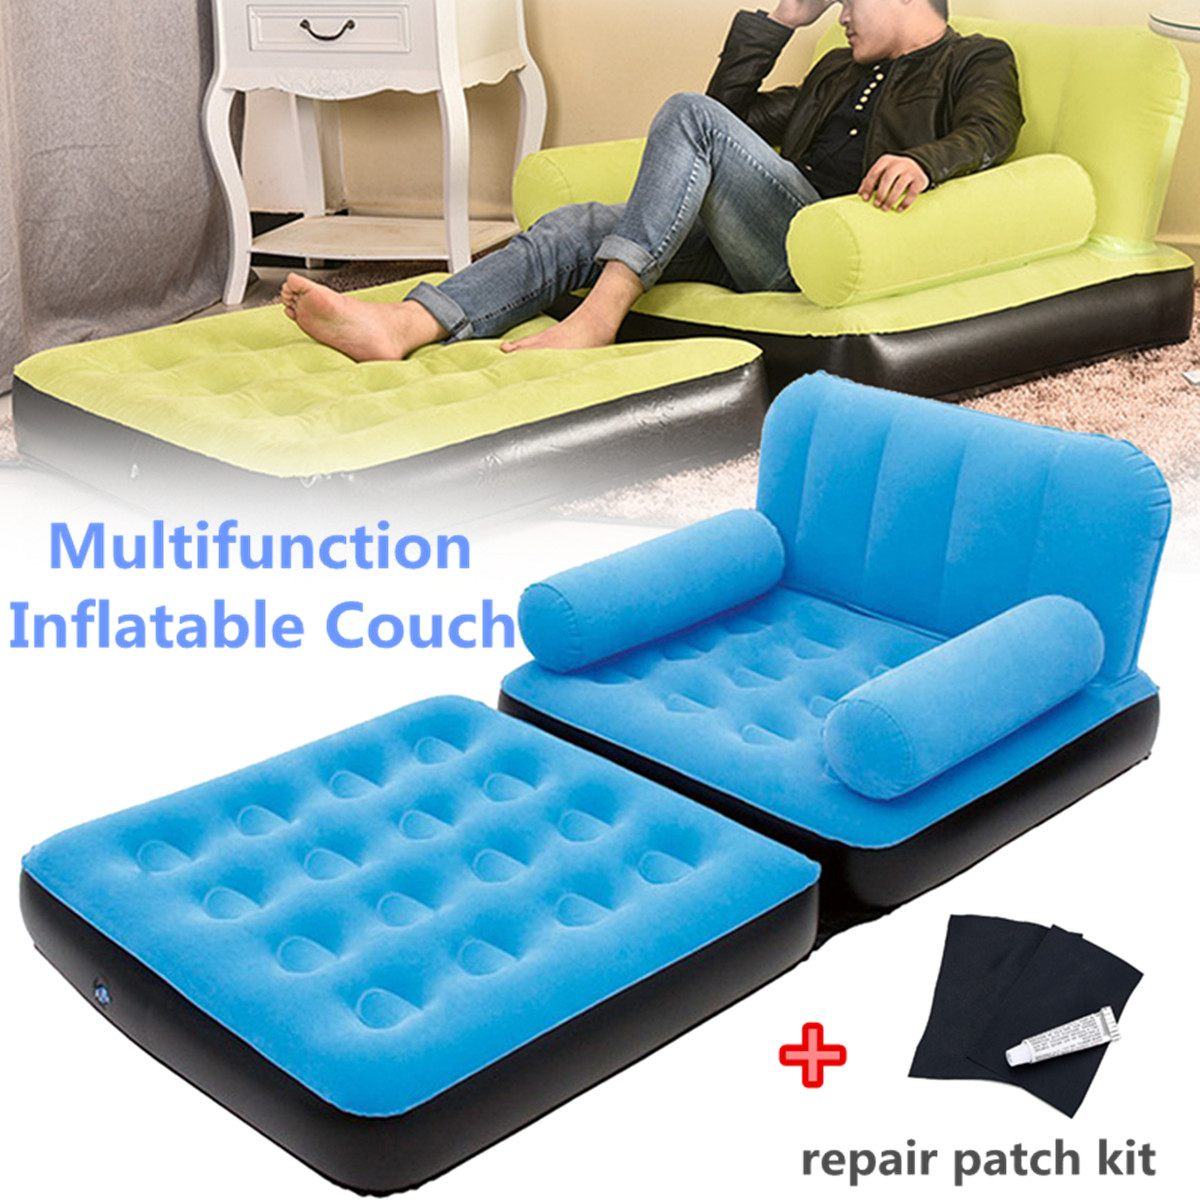 Inflatable Furniture Chair Sofa Sleeping Bag Air Sofa Beach Bed Easy To Carry Lazy Bag Camping Outdoor Inflatable Lounger CouchInflatable Furniture Chair Sofa Sleeping Bag Air Sofa Beach Bed Easy To Carry Lazy Bag Camping Outdoor Inflatable Lounger Couch